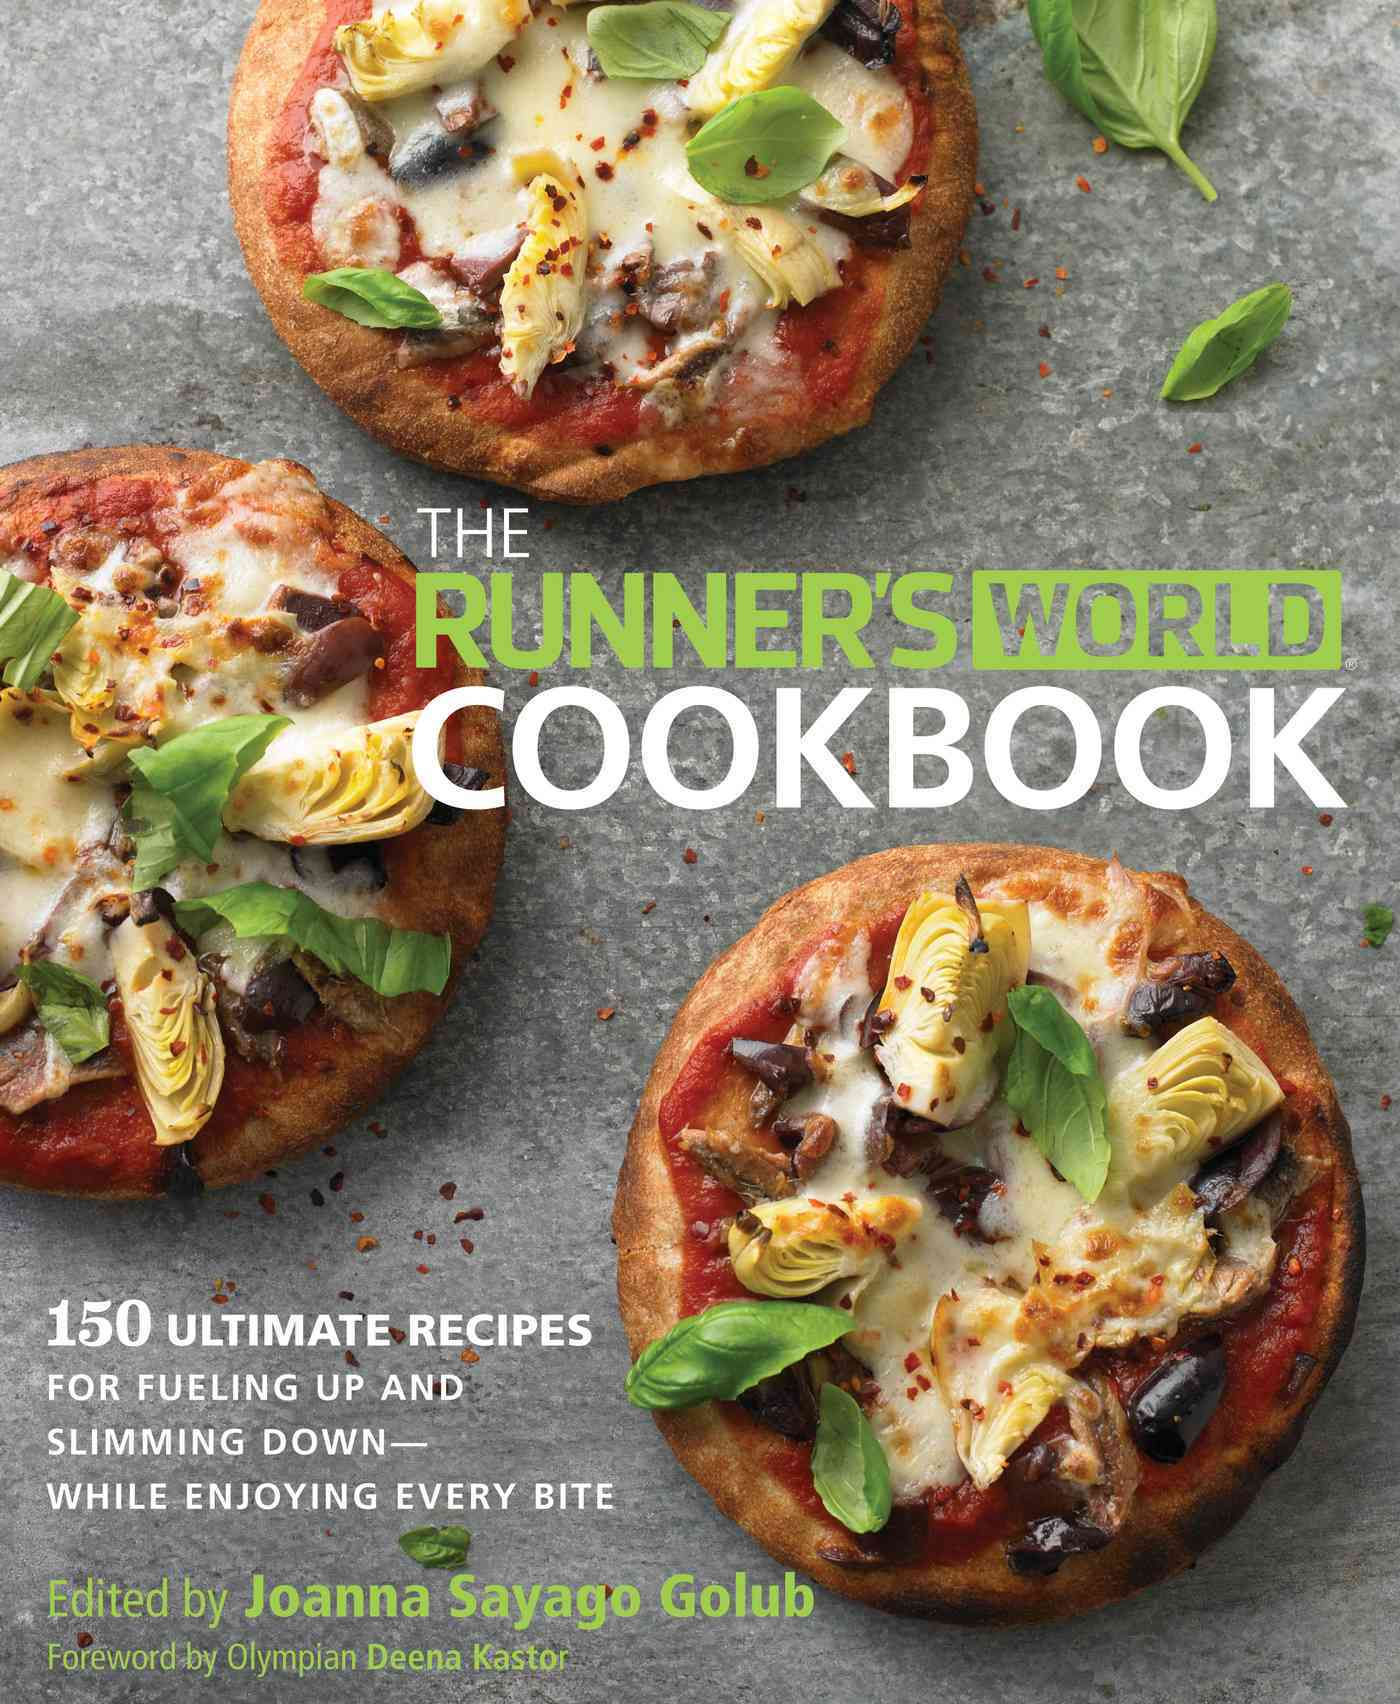 The Runner's World Cookbook: 150 Ultimate Recipes For Fueling Up and Slimming Down - While Enjoying Every Bite (Hardcover)